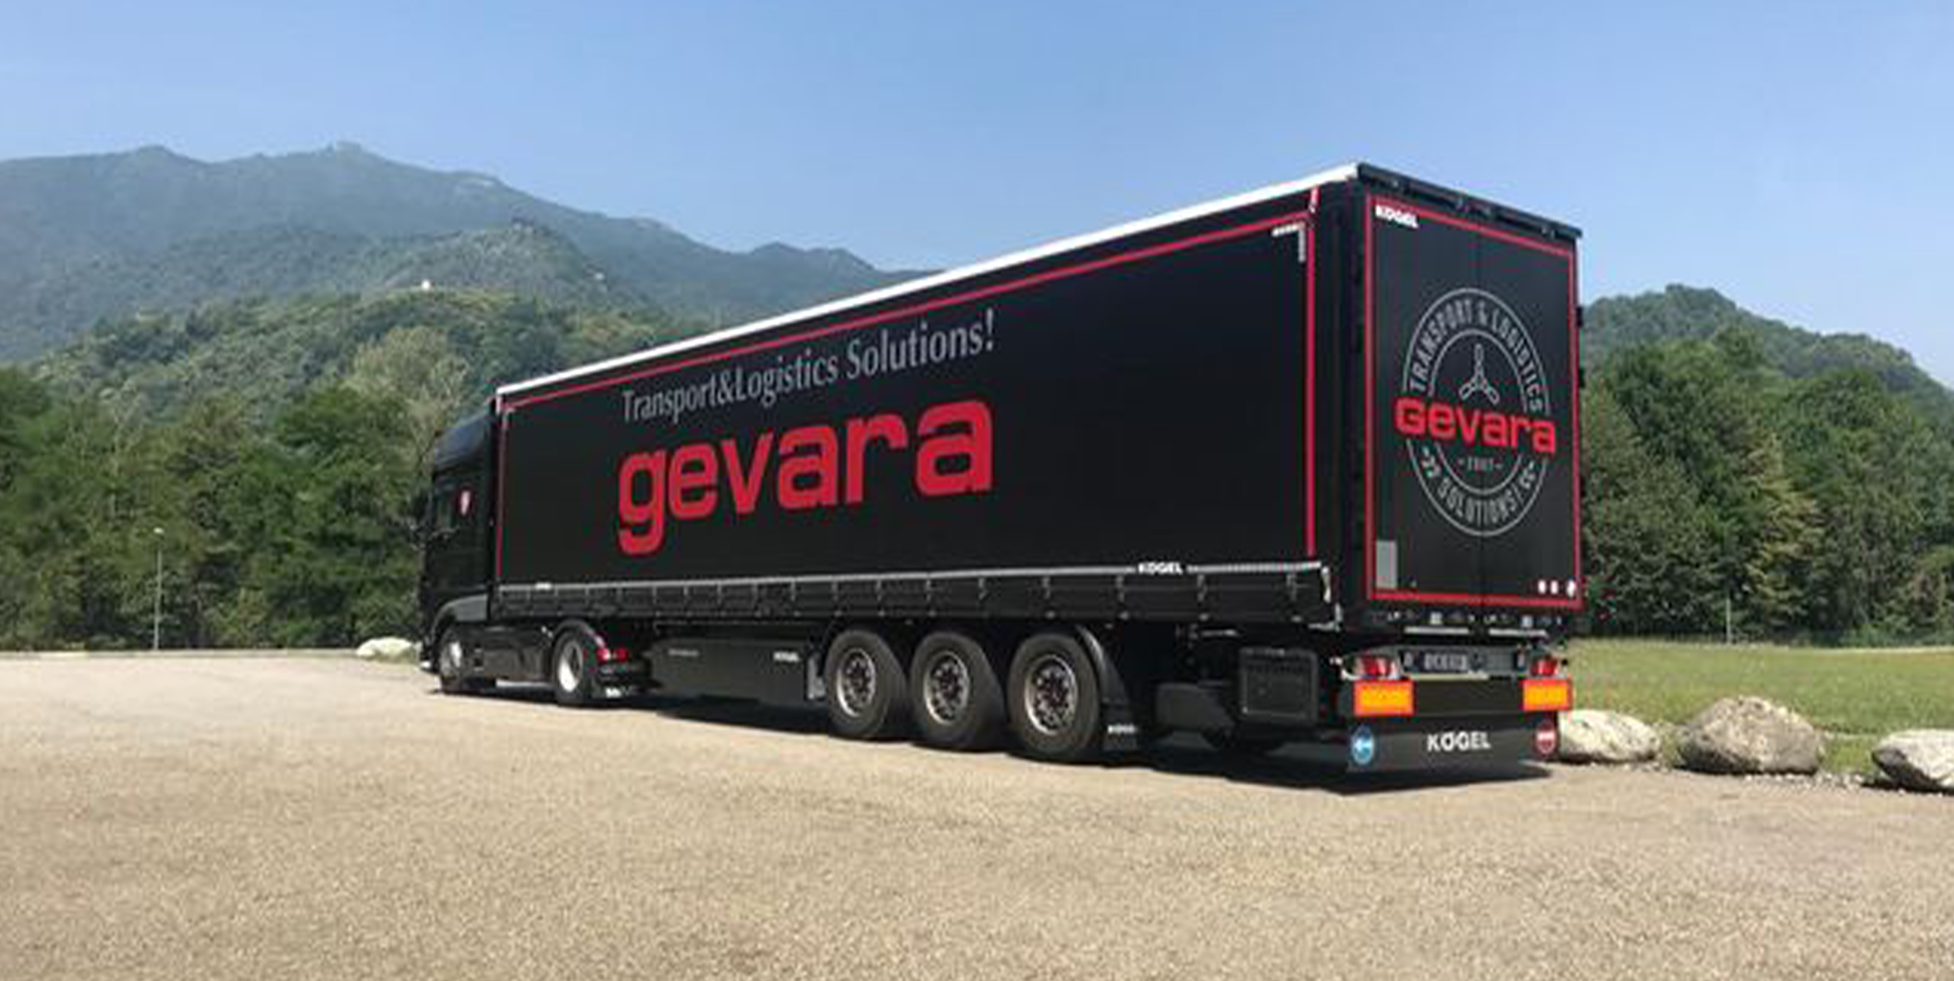 gevara-truck-transportation-inside-europe